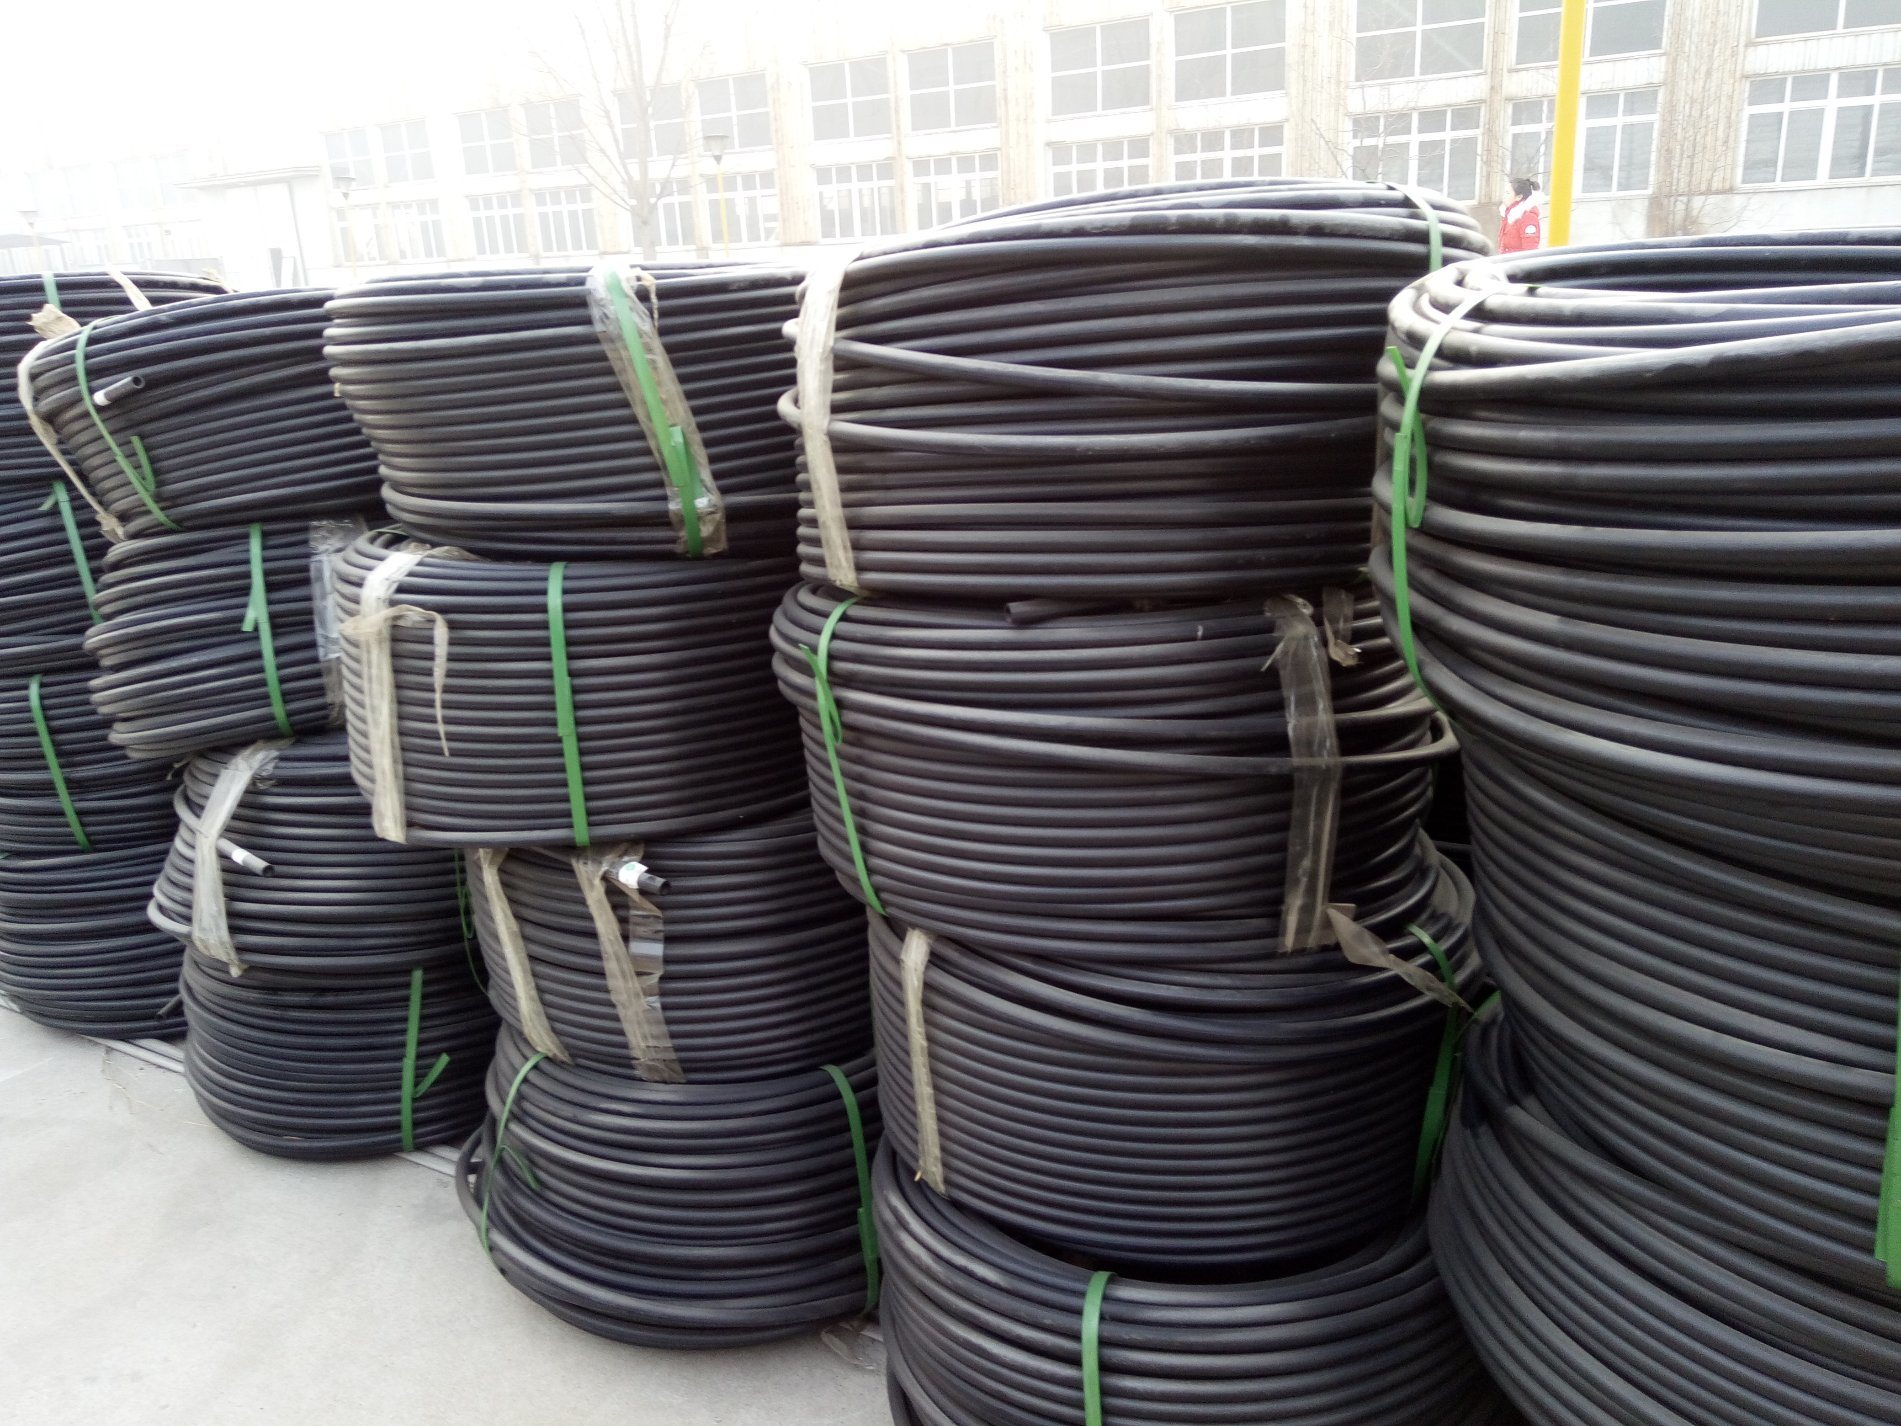 China Polyethylene Material Drip Irrigation Pipe For Farming Sprinkler System Wiring